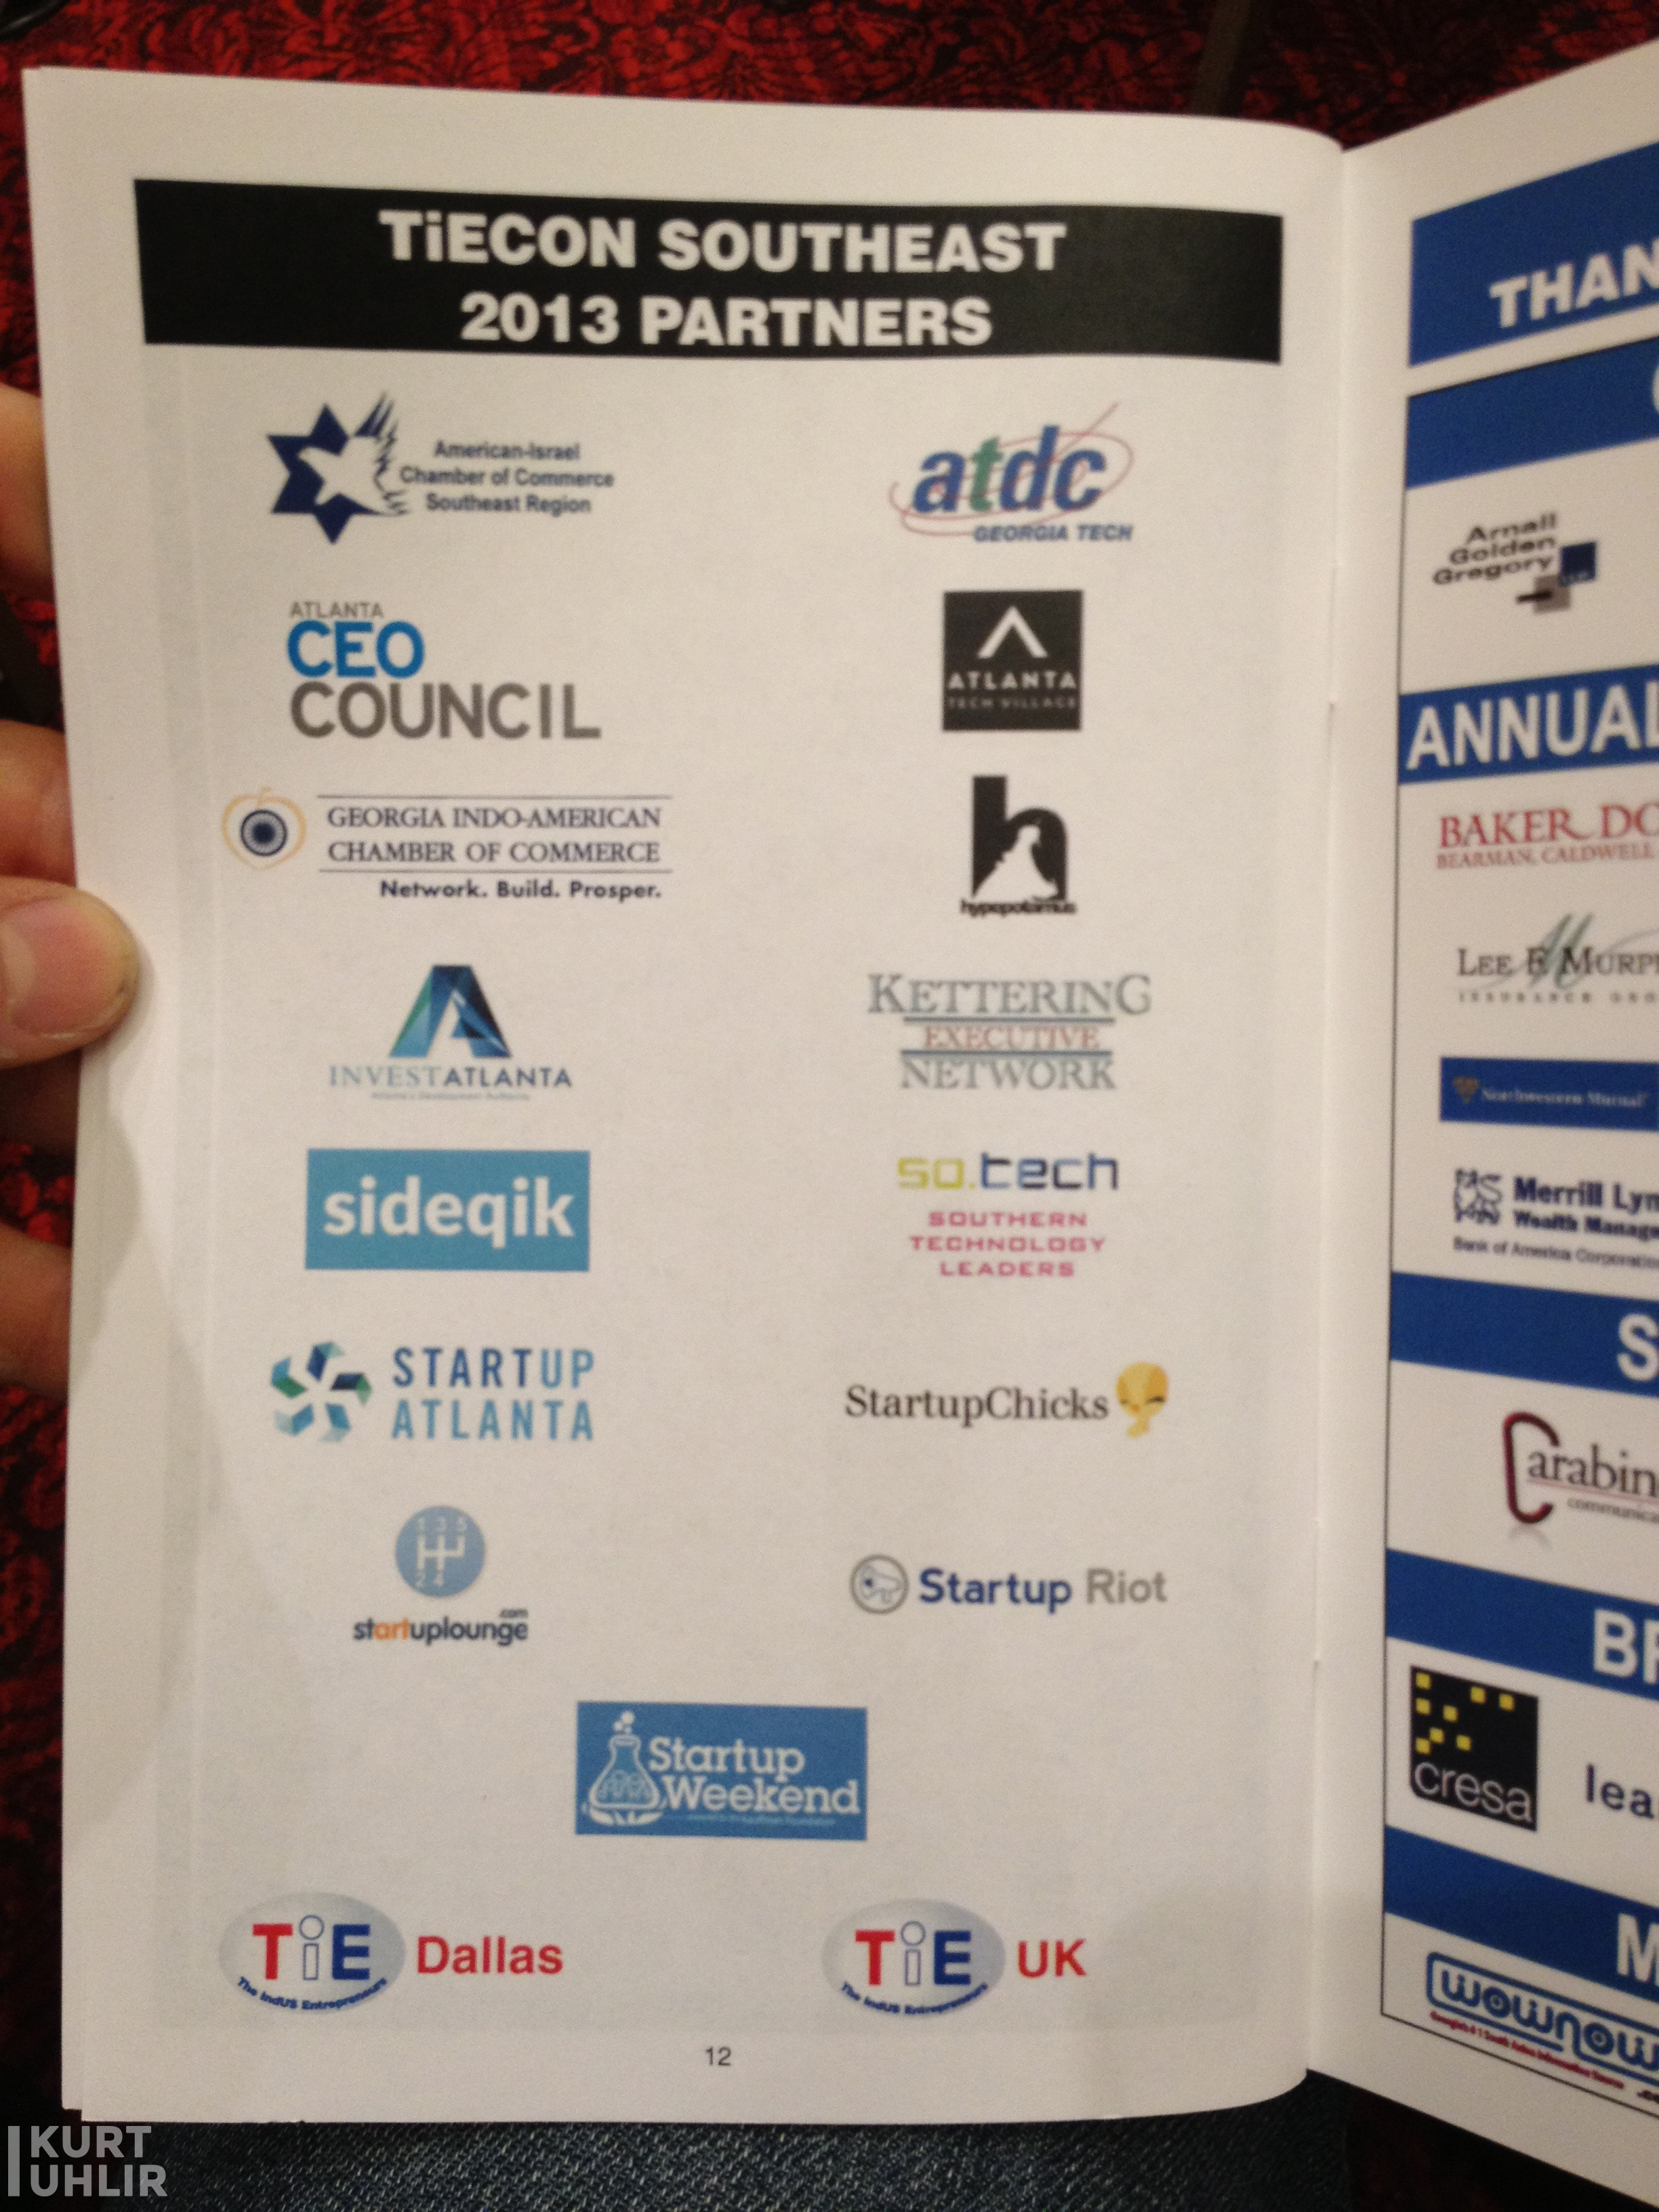 TiECON Southeast 2013 - Southern Technology Leaders and Sideqik as partners